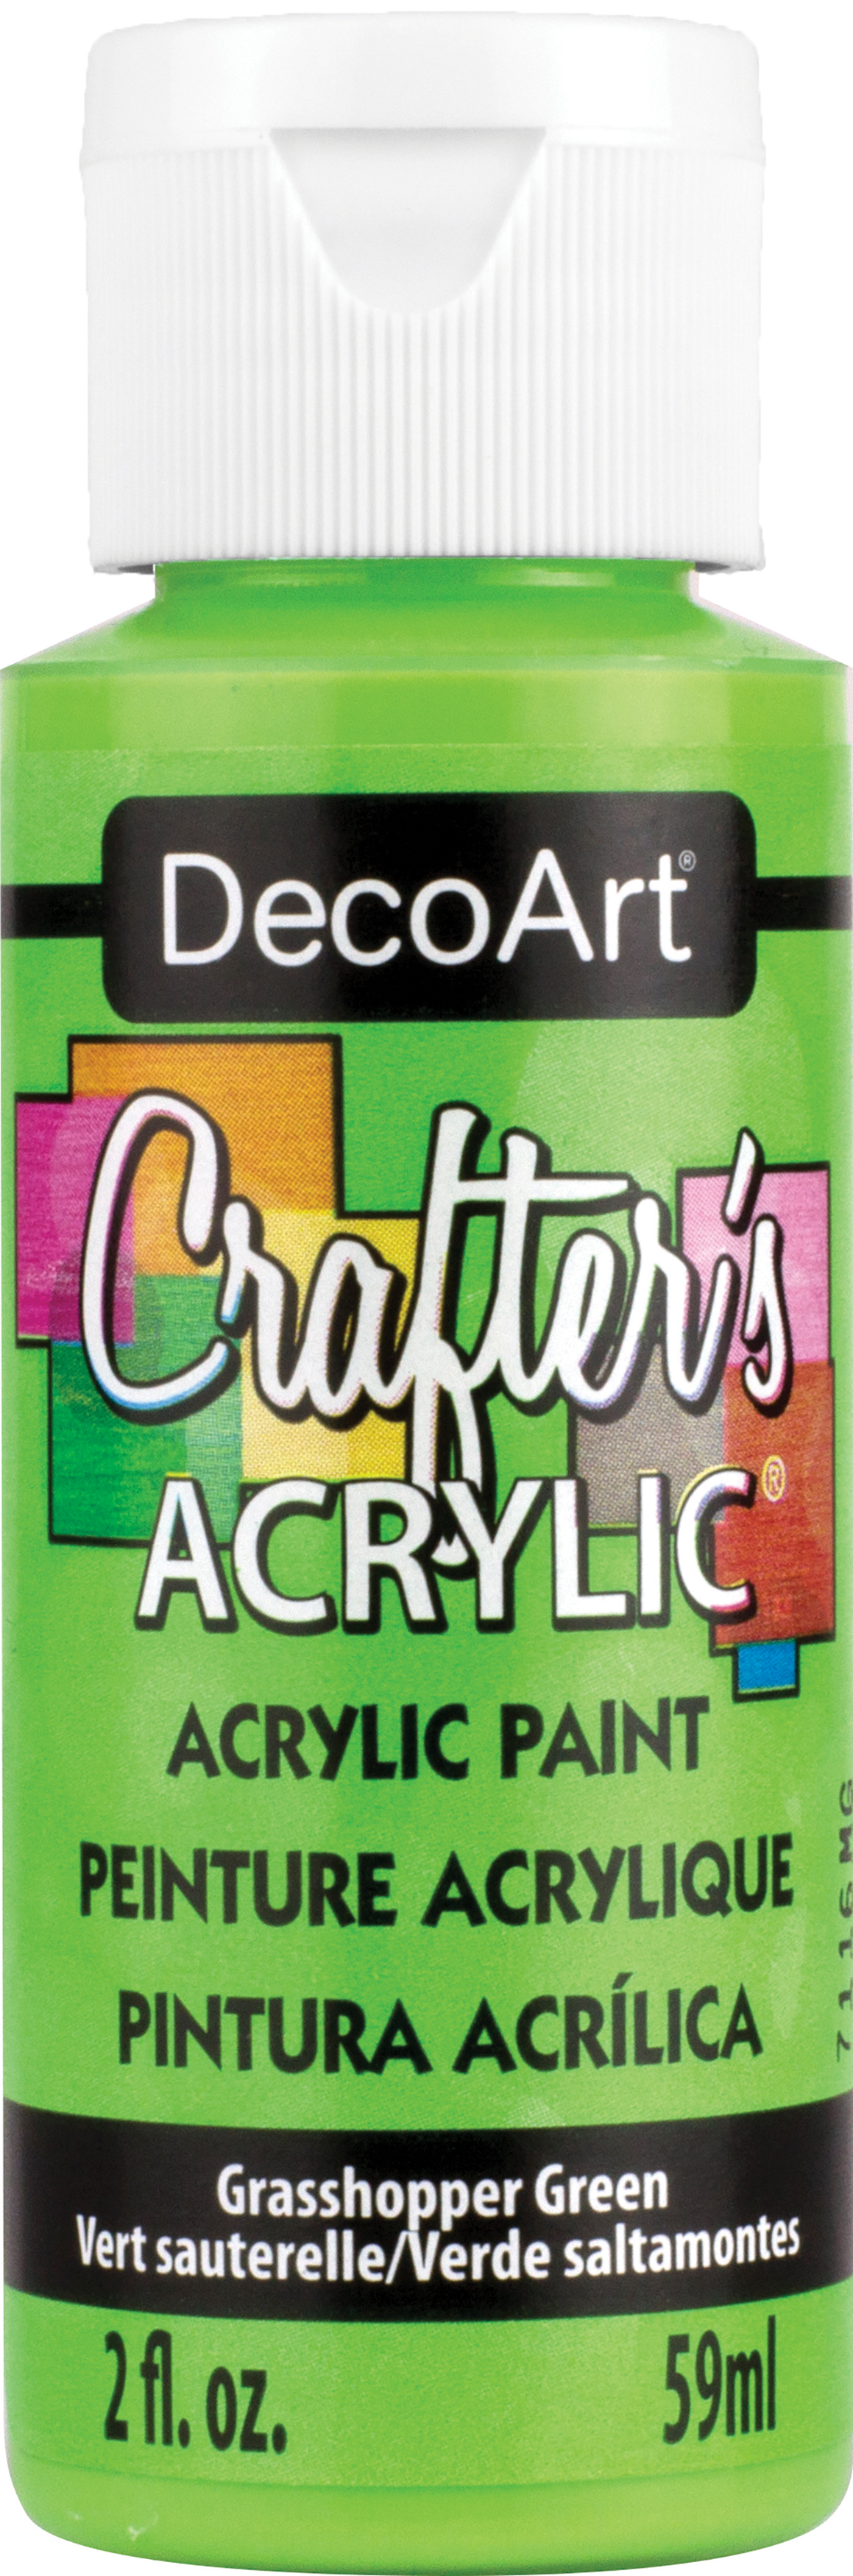 Crafter's Acrylic All-Purpose Paint 2oz-Grasshopper Green